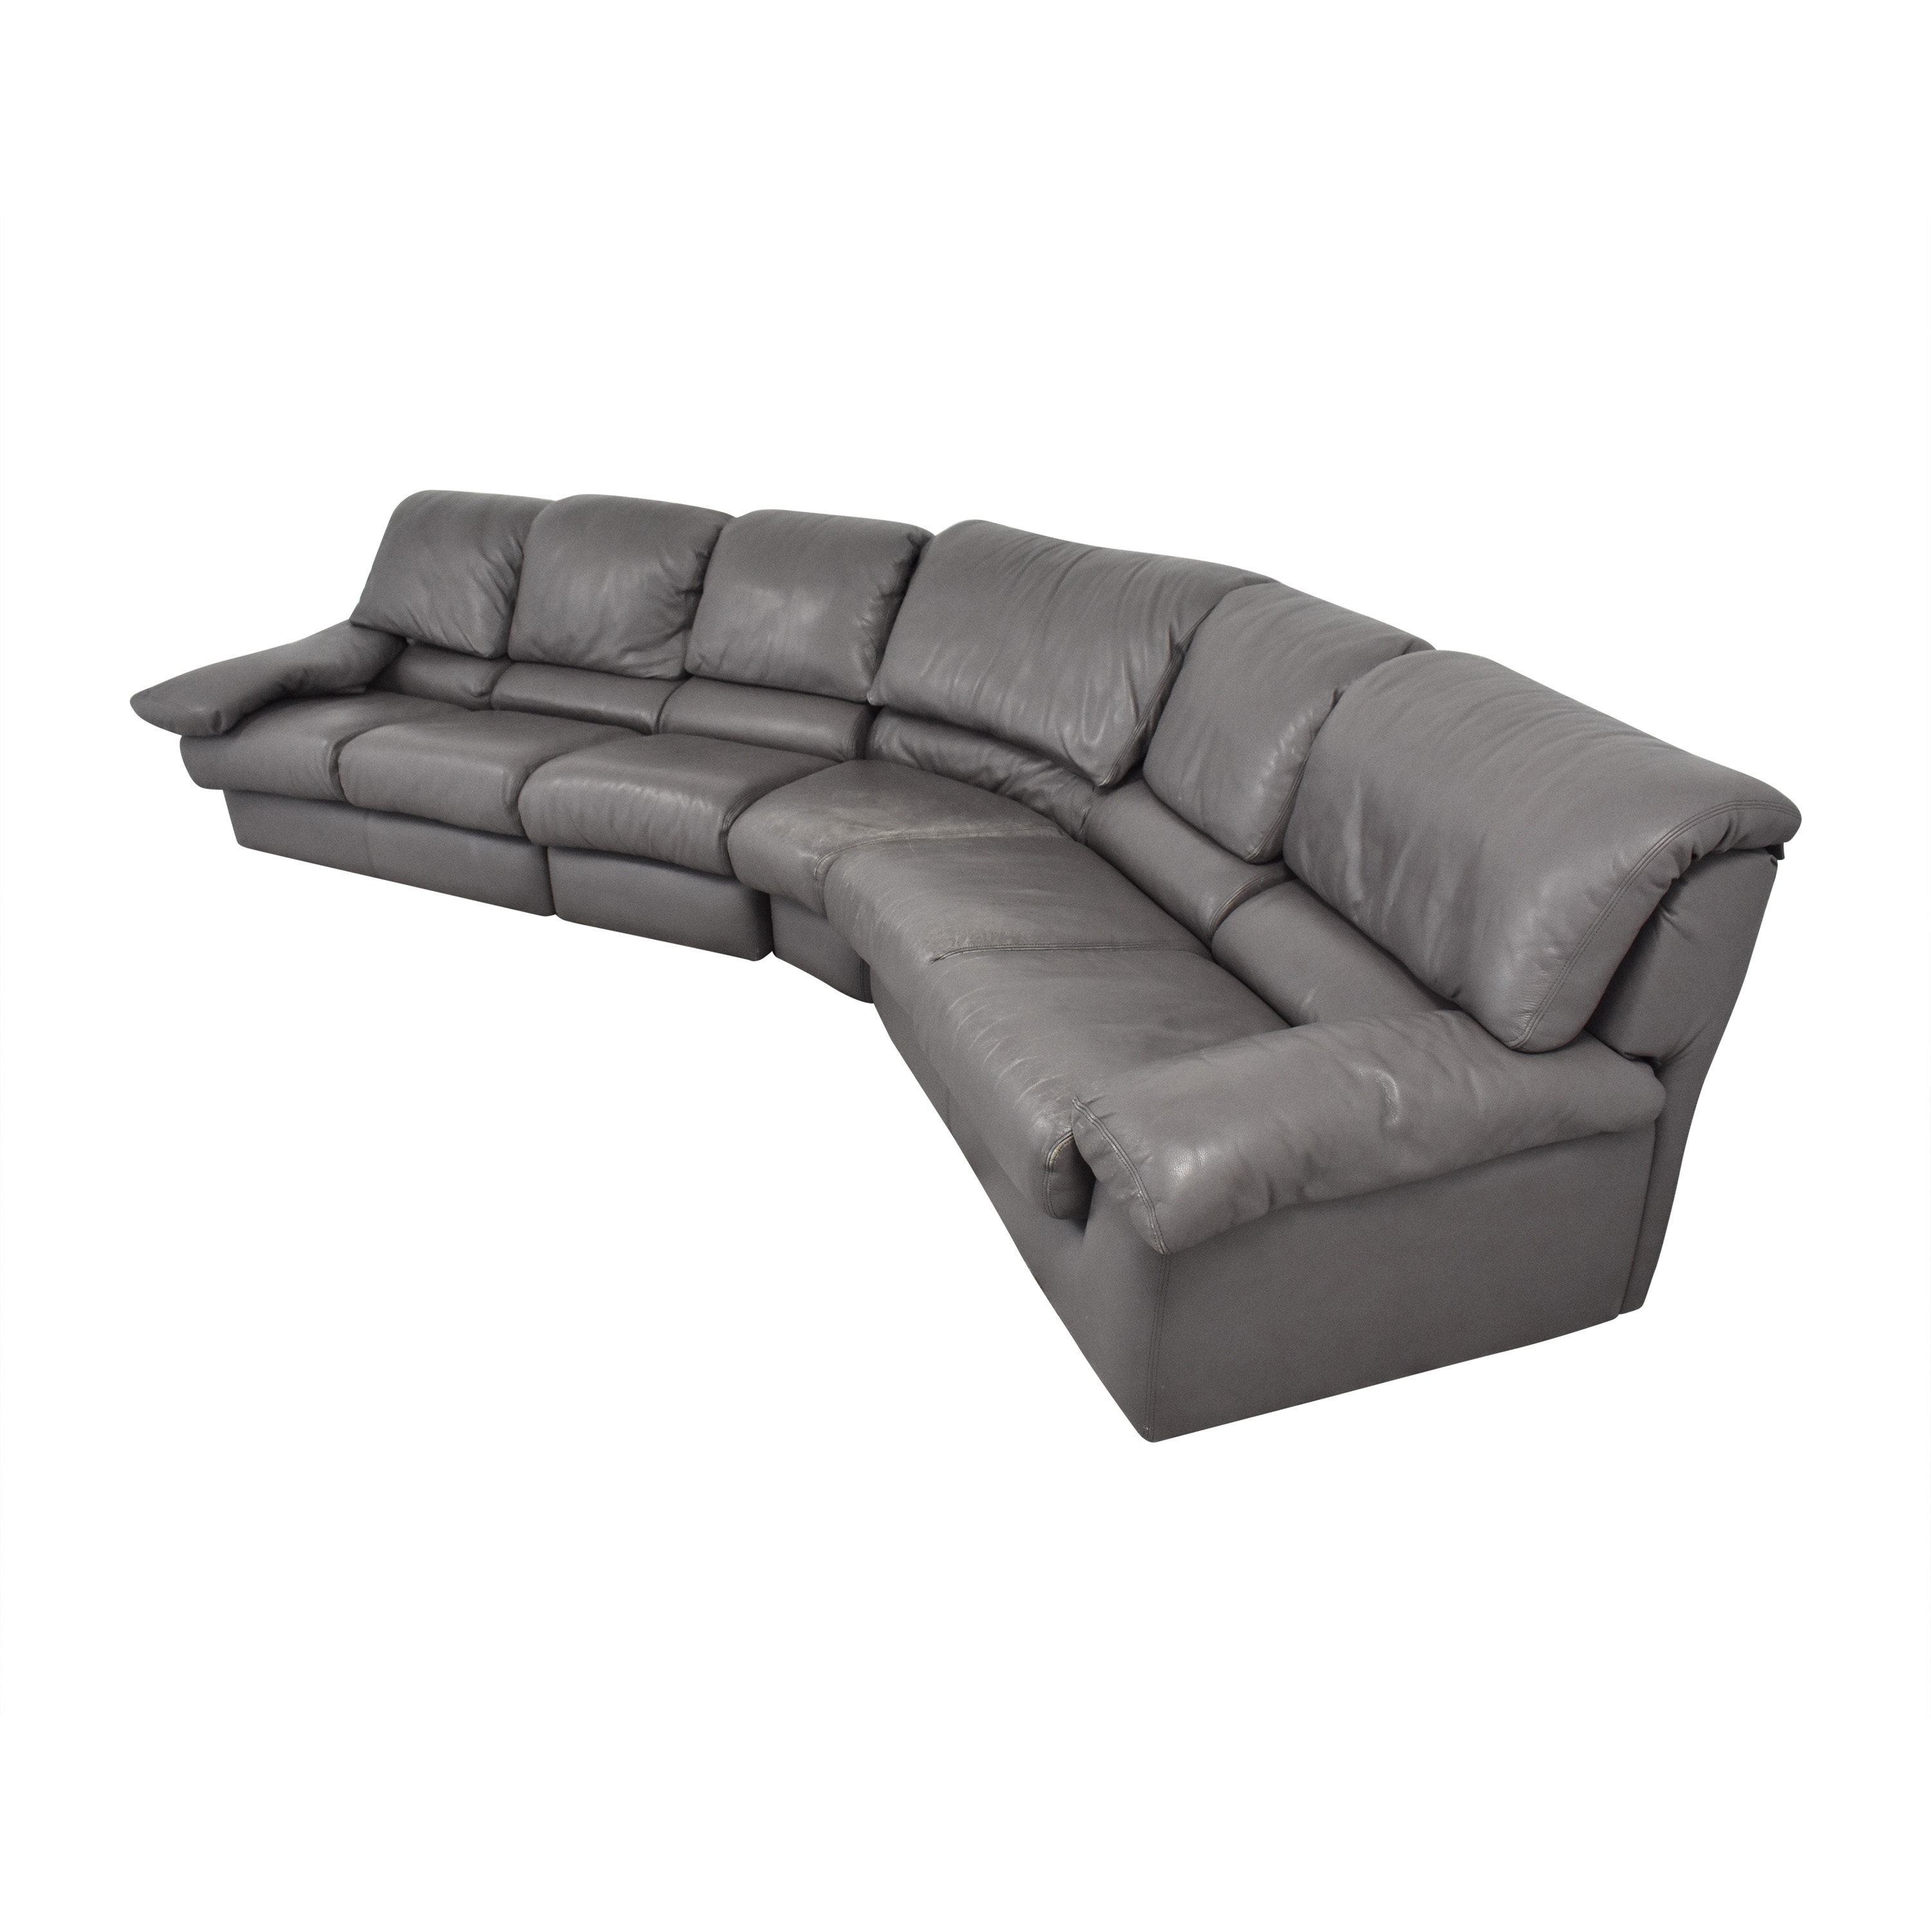 Leather Center Leather Center Curved Sectional Sofa with Ottoman pa